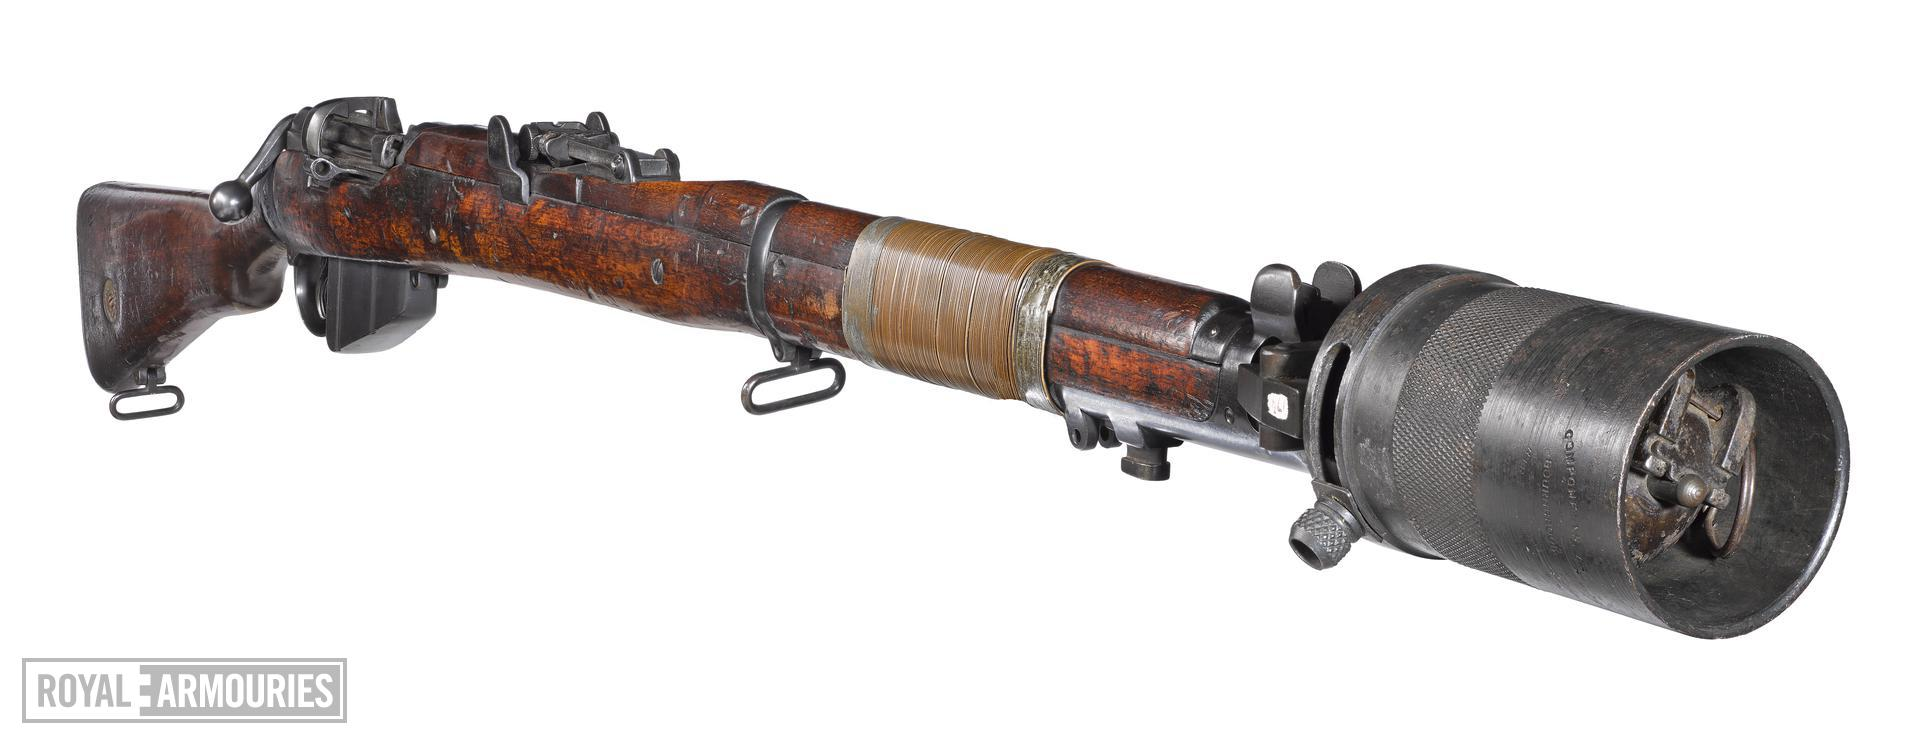 Centrefire bolt-action rifle - Short, Magazine Lee-Enfield rifle Mark III* EY (Emergency use, adapted for grenade launching)